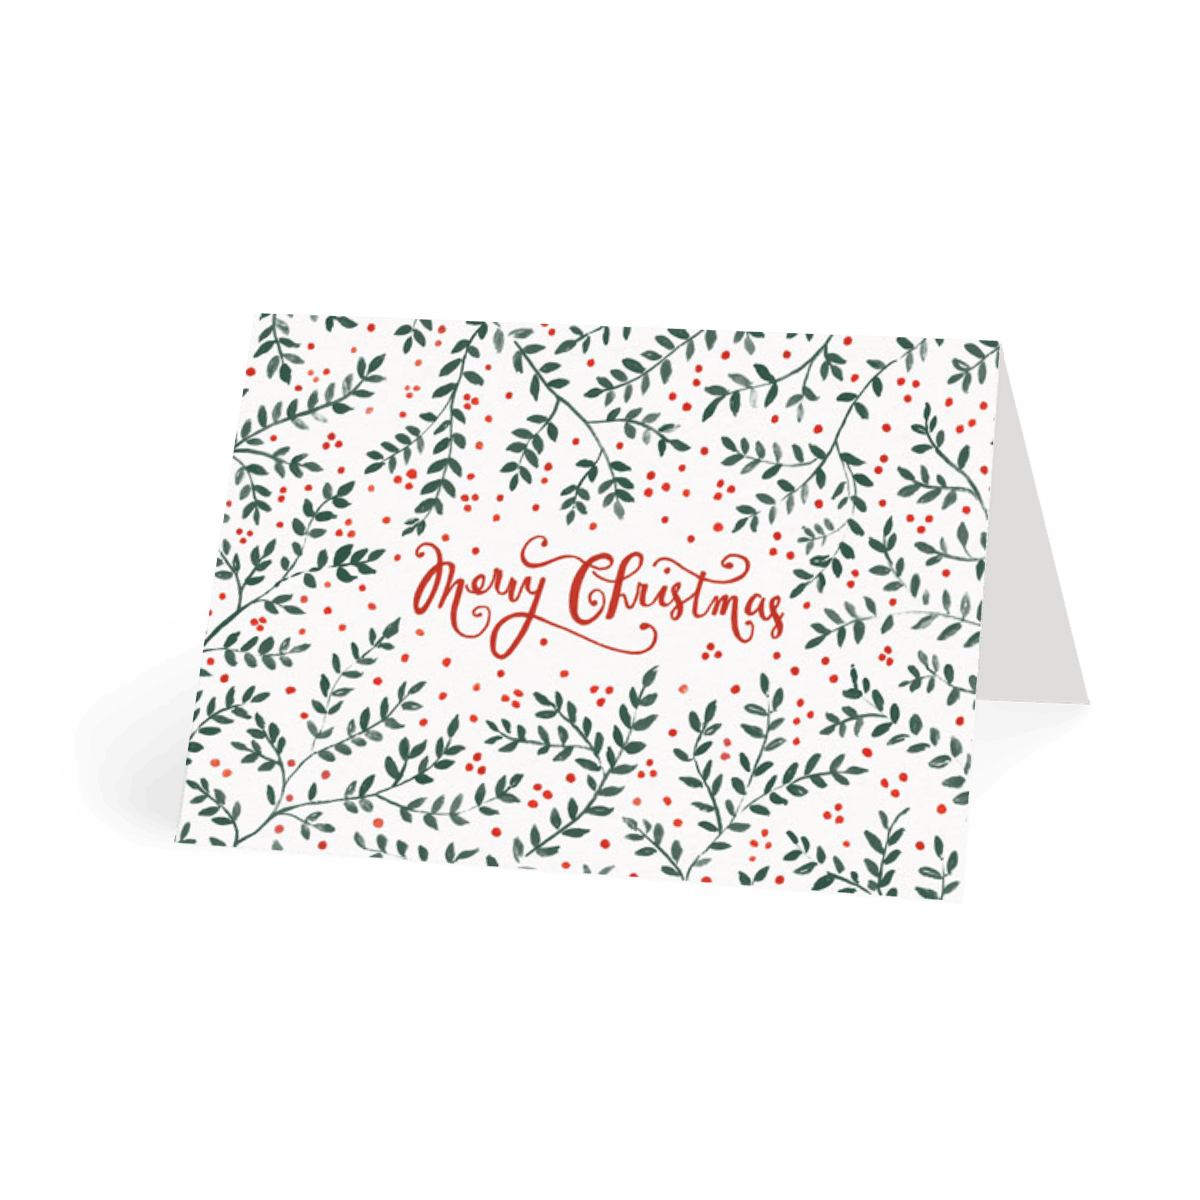 Https%3a%2f%2fwww.papier.com%2fproduct image%2f30094%2f14%2fditsy christmas berries 7588 front 1508939805.png?ixlib=rb 1.1